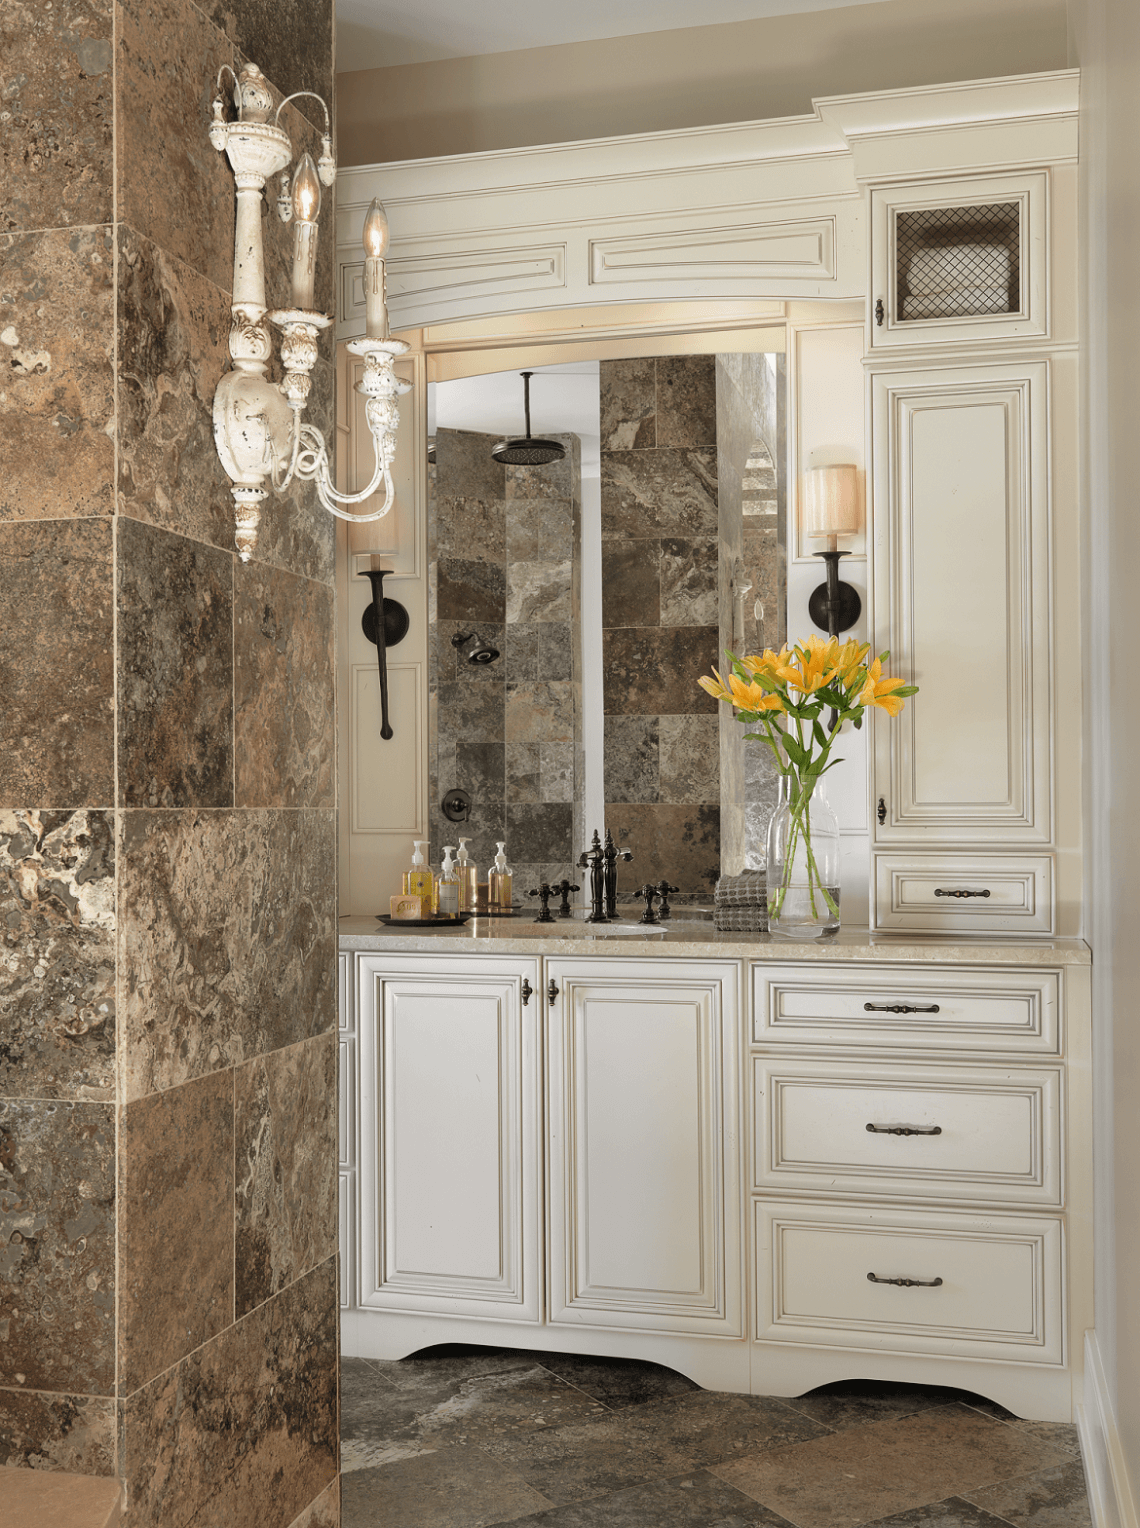 Bathroom cabinetry custom vanity beck allen cabinetry for Elegant master bathroom ideas